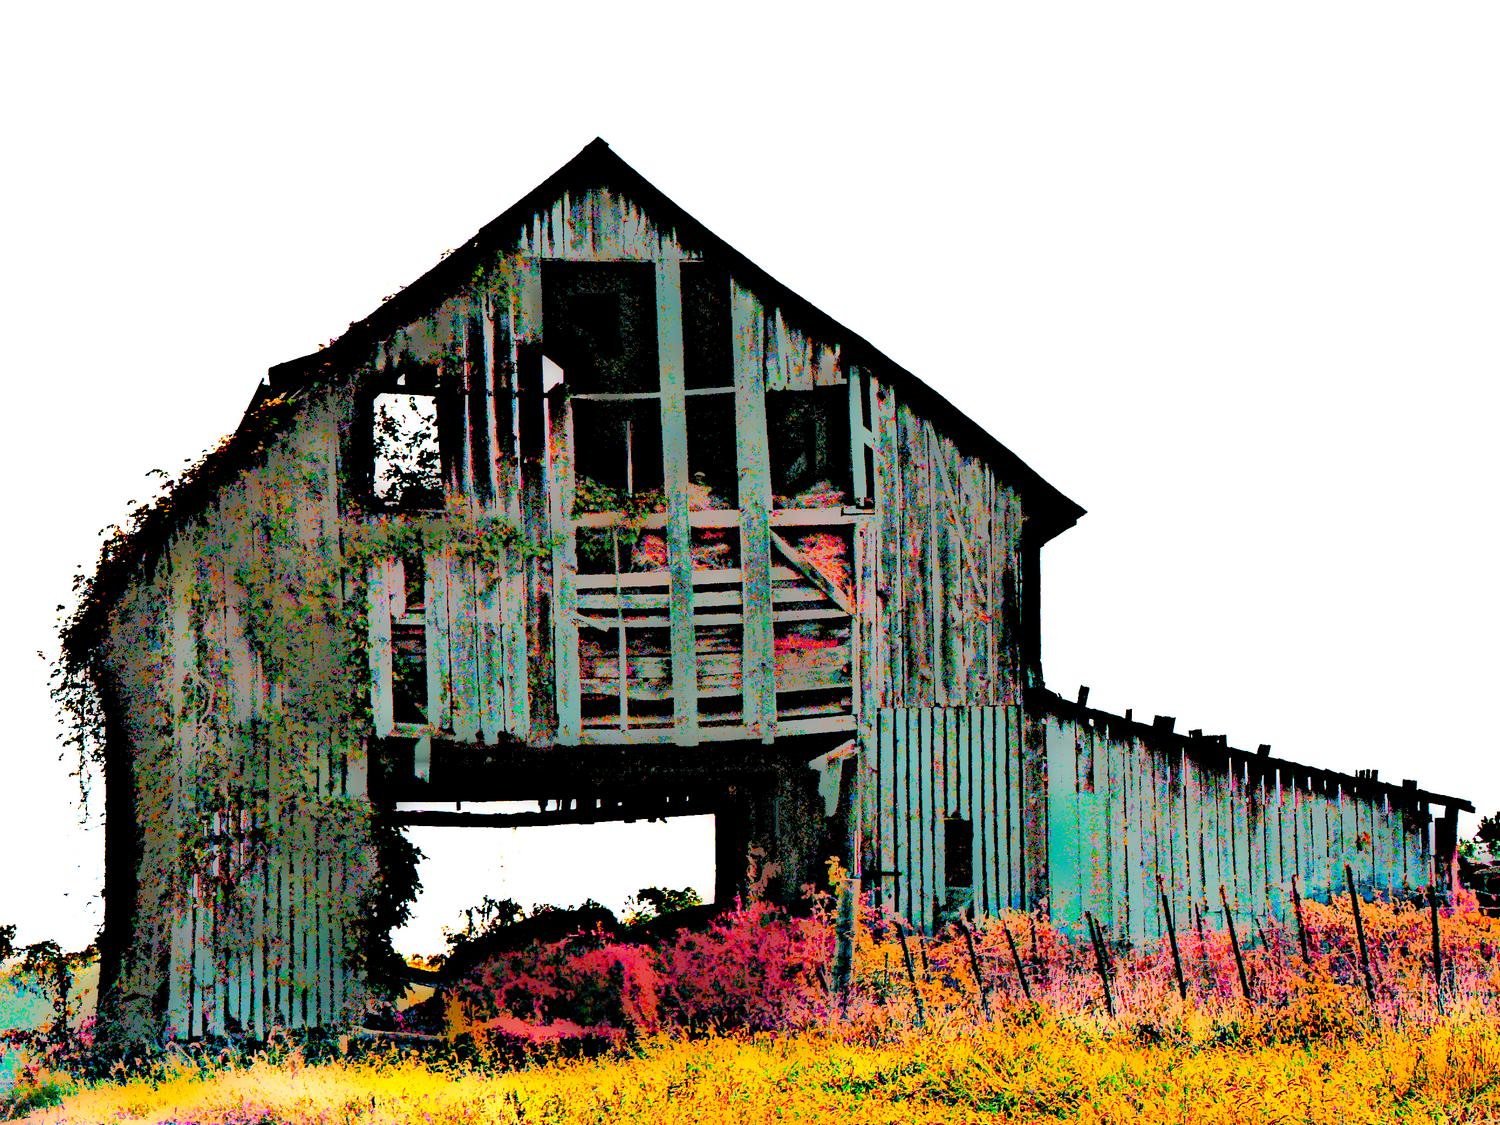 - Abandoned barn - #2 - Techno-Impressionist Museum - Techno-Impressionism - art - beautiful - photo photography picture - by Tony Karp